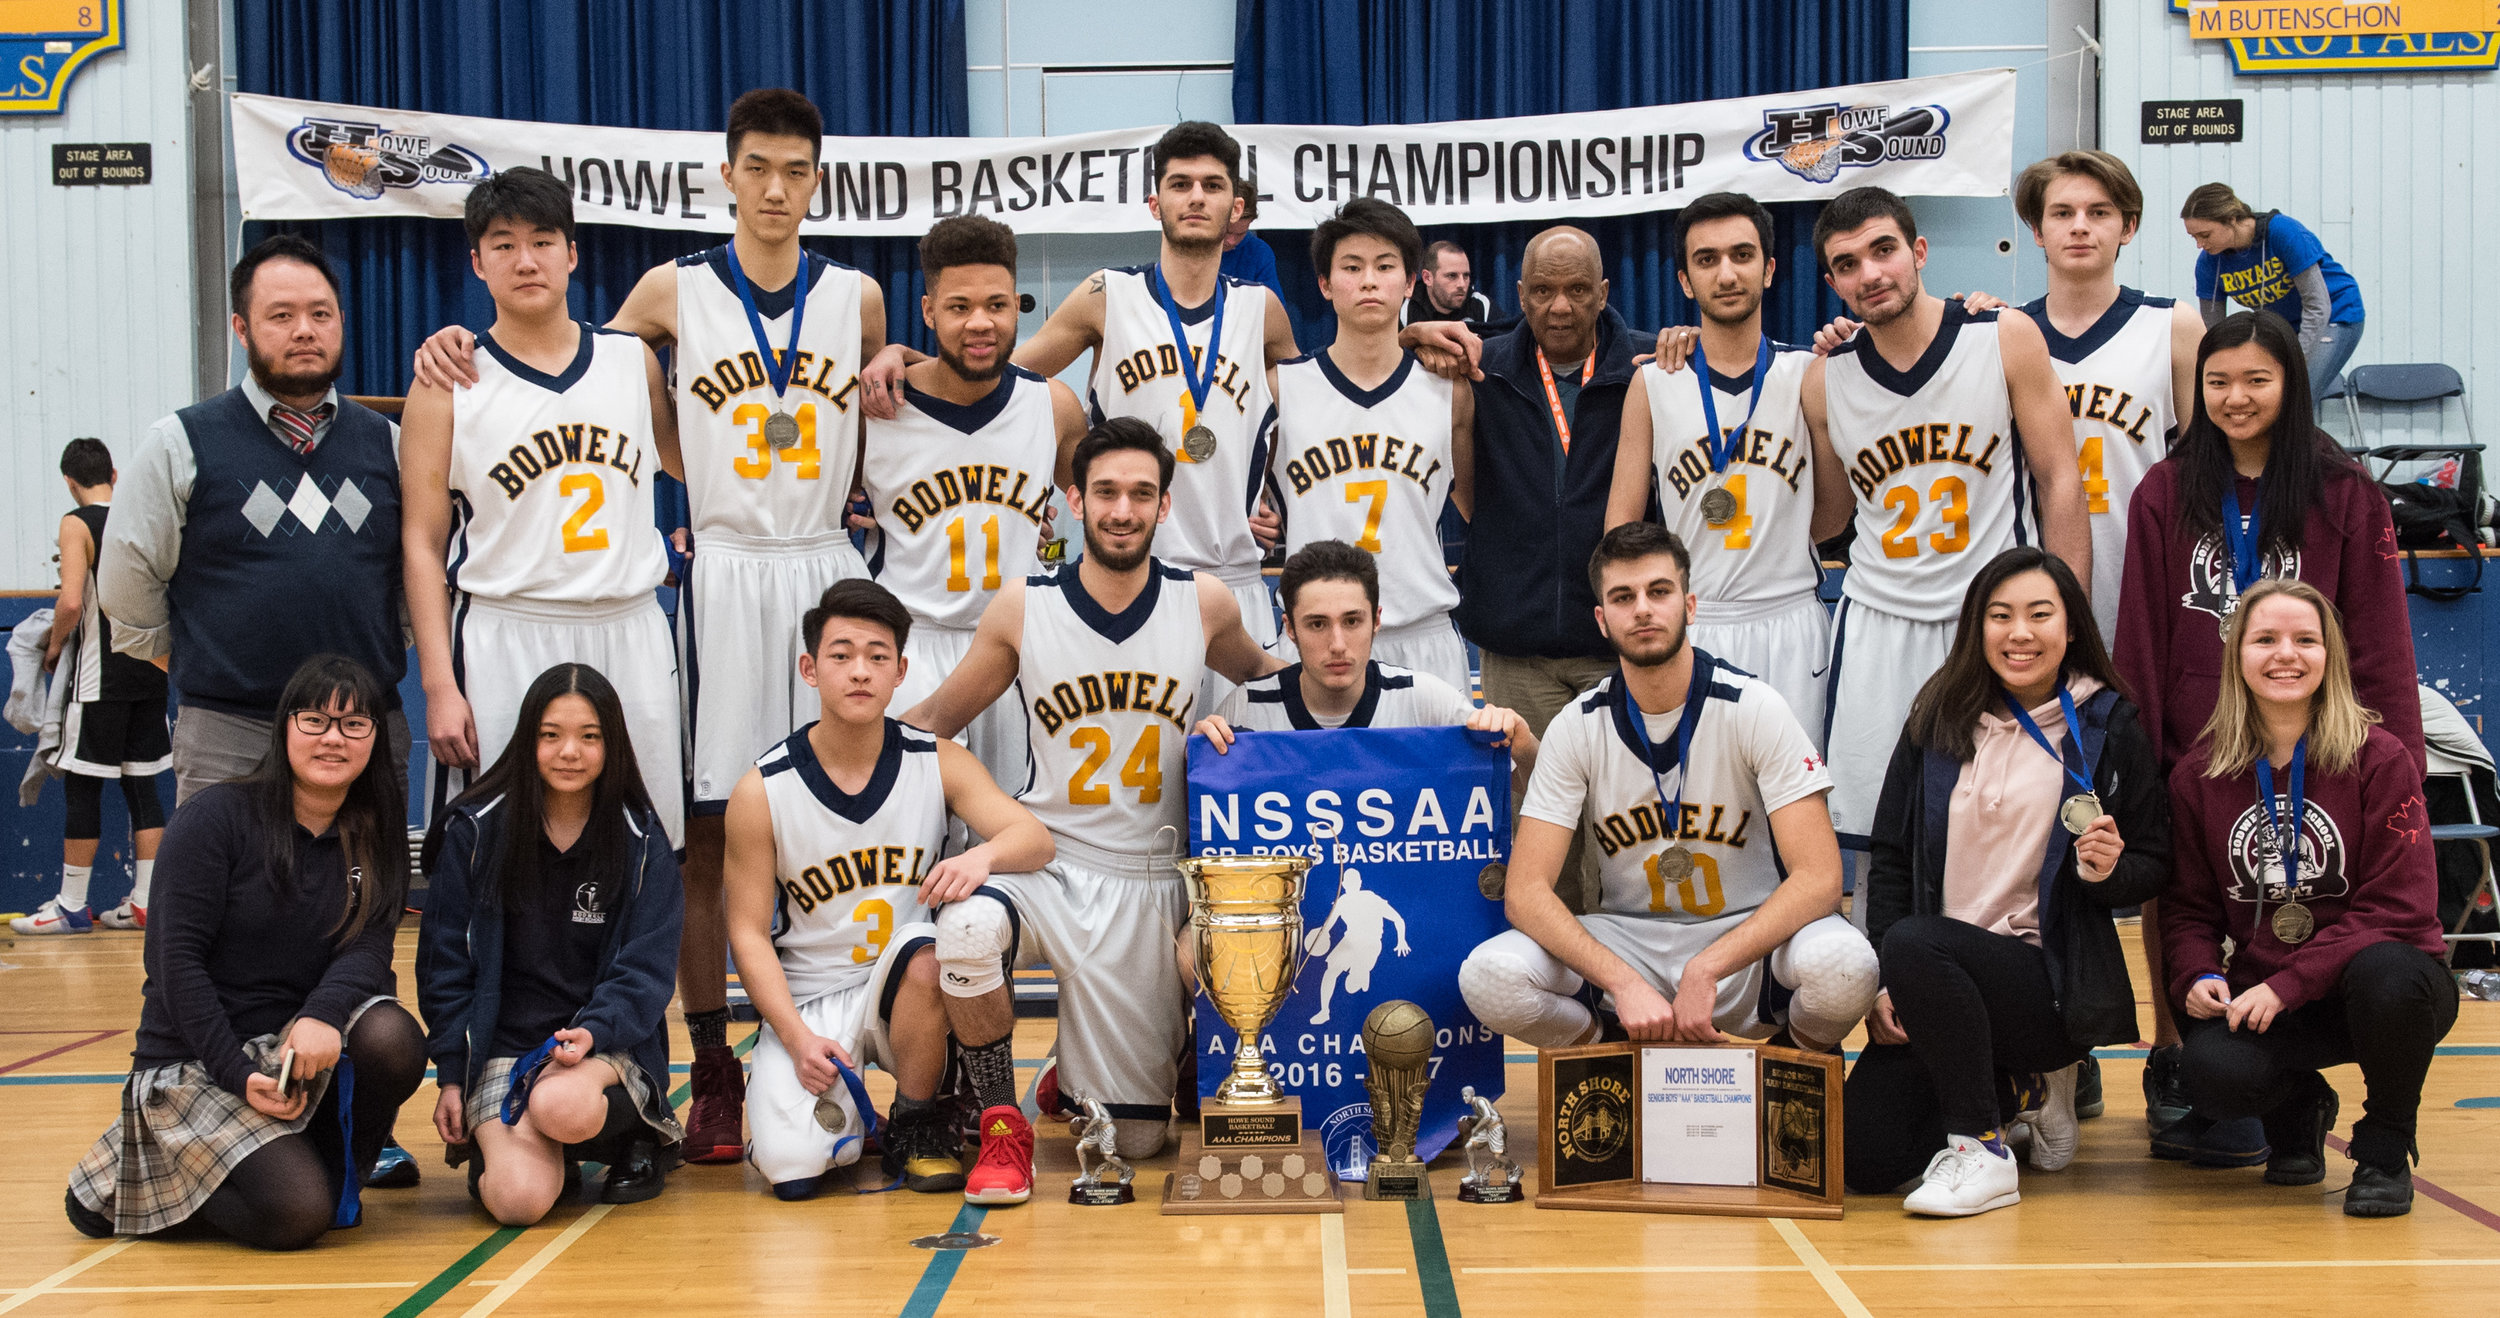 BODWELL BRUINS -2017 AAA HOWE SOUND CHAMPIONS